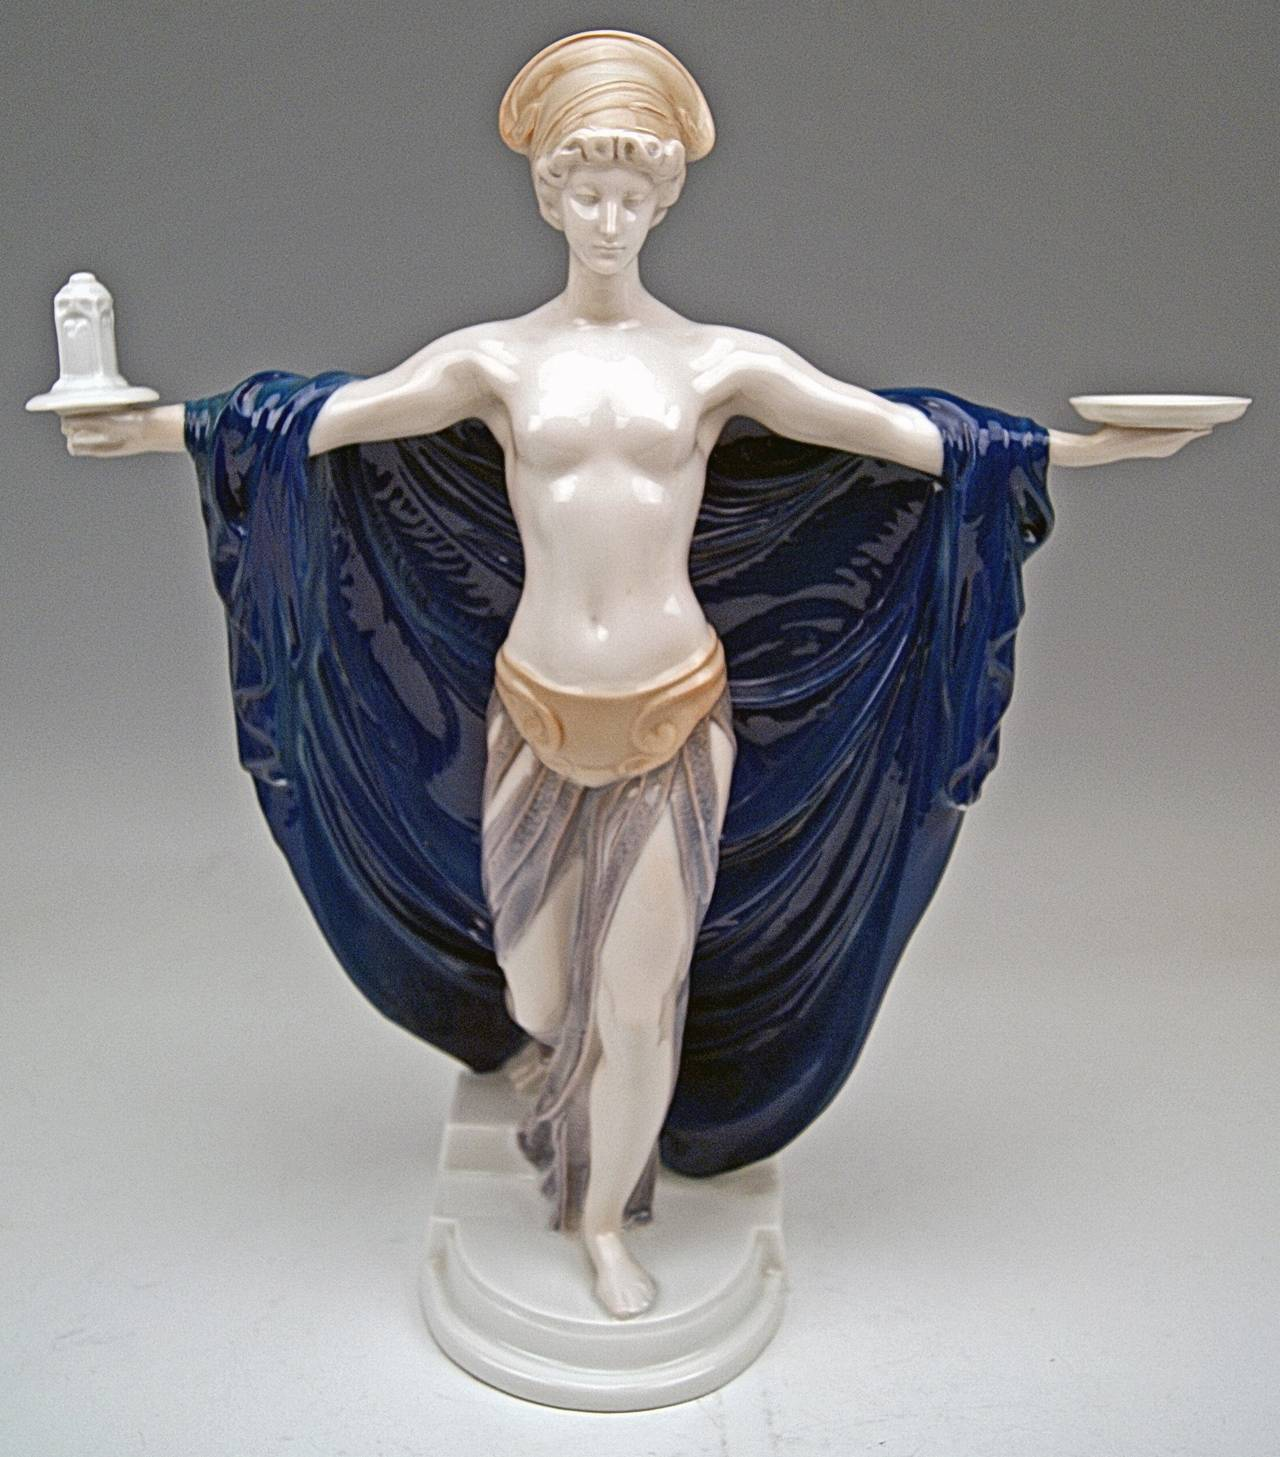 Early 20th Century Rosenthal Germany Rare Figurine Temple Dedication by F. Liebermann, circa 1914 For Sale